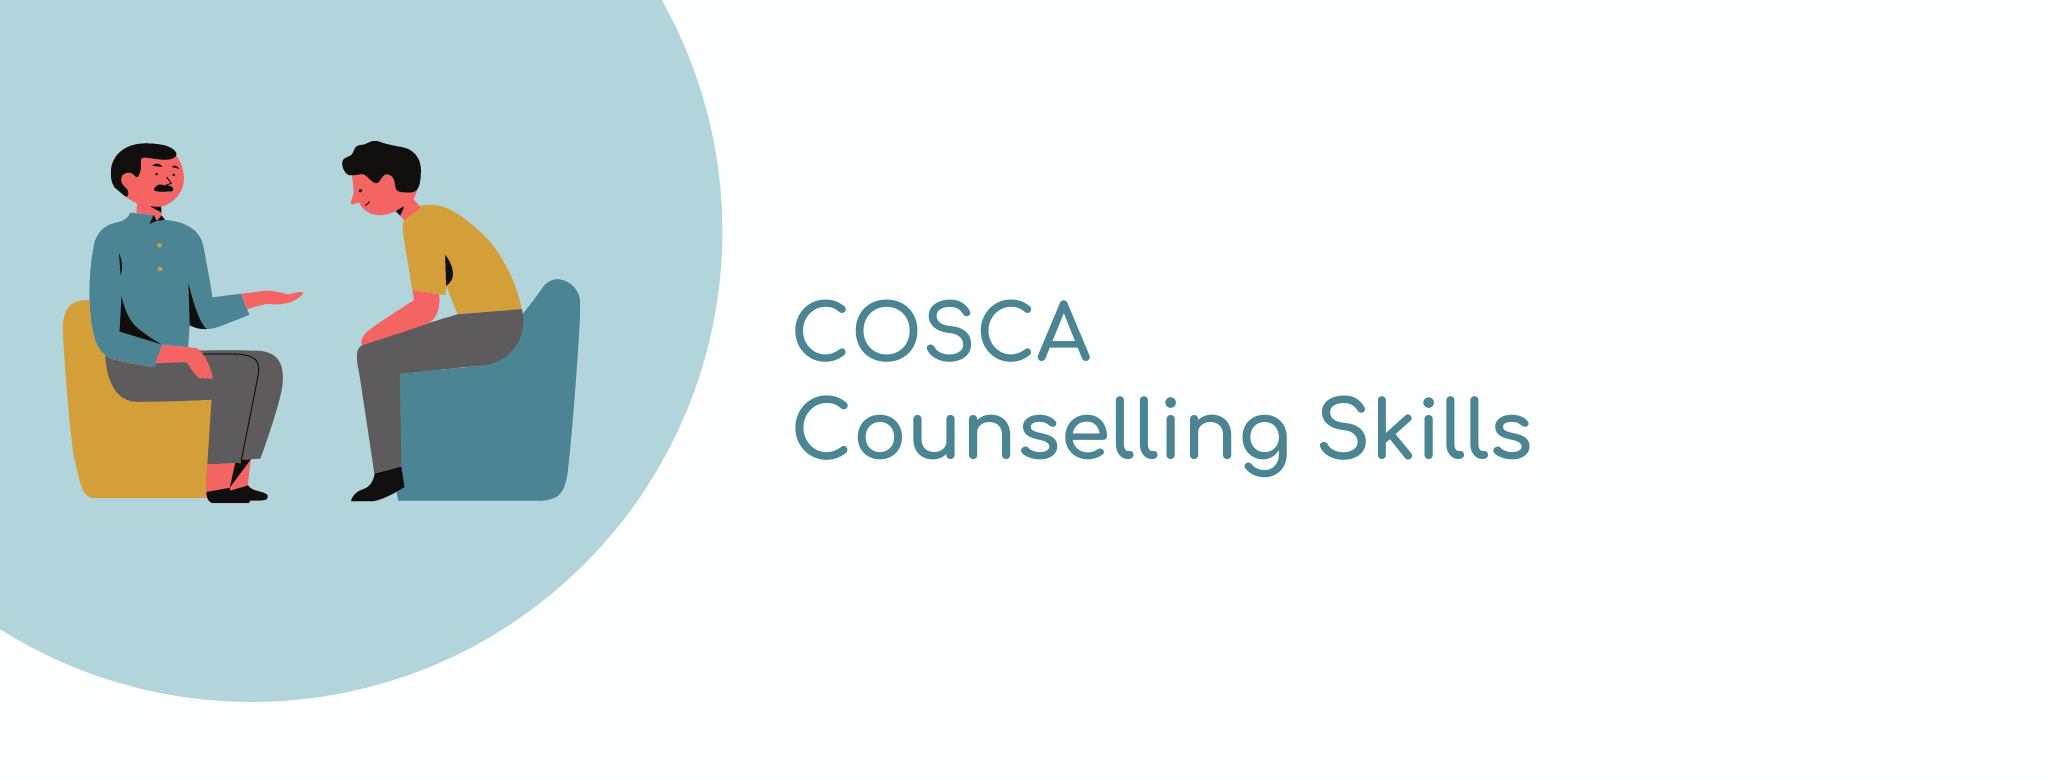 gca-cosca-counselling-skills